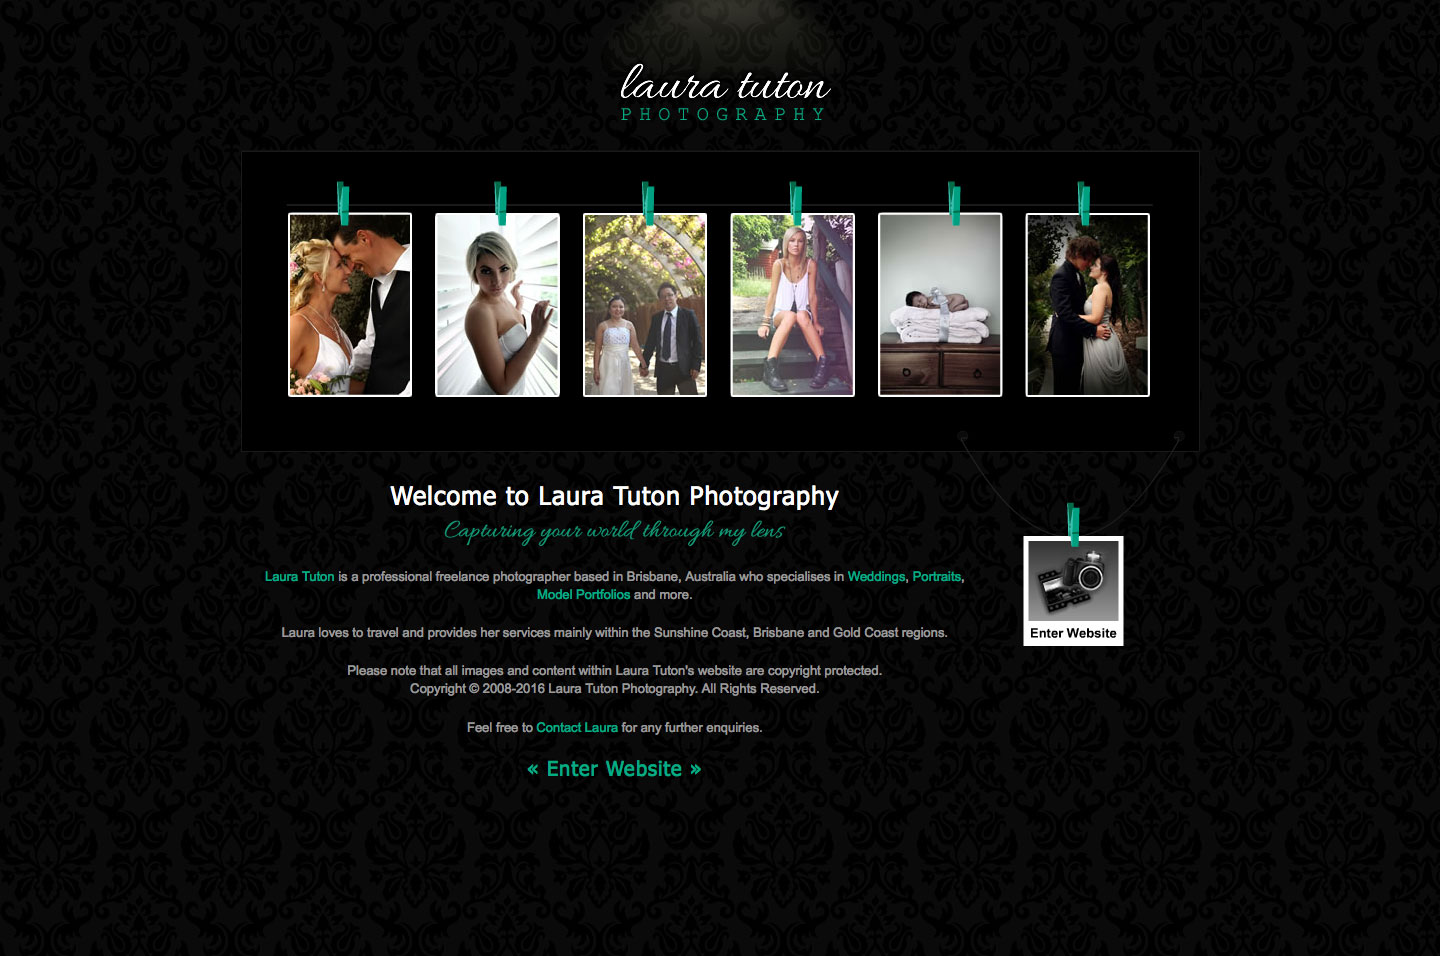 Laura Tuton Photography